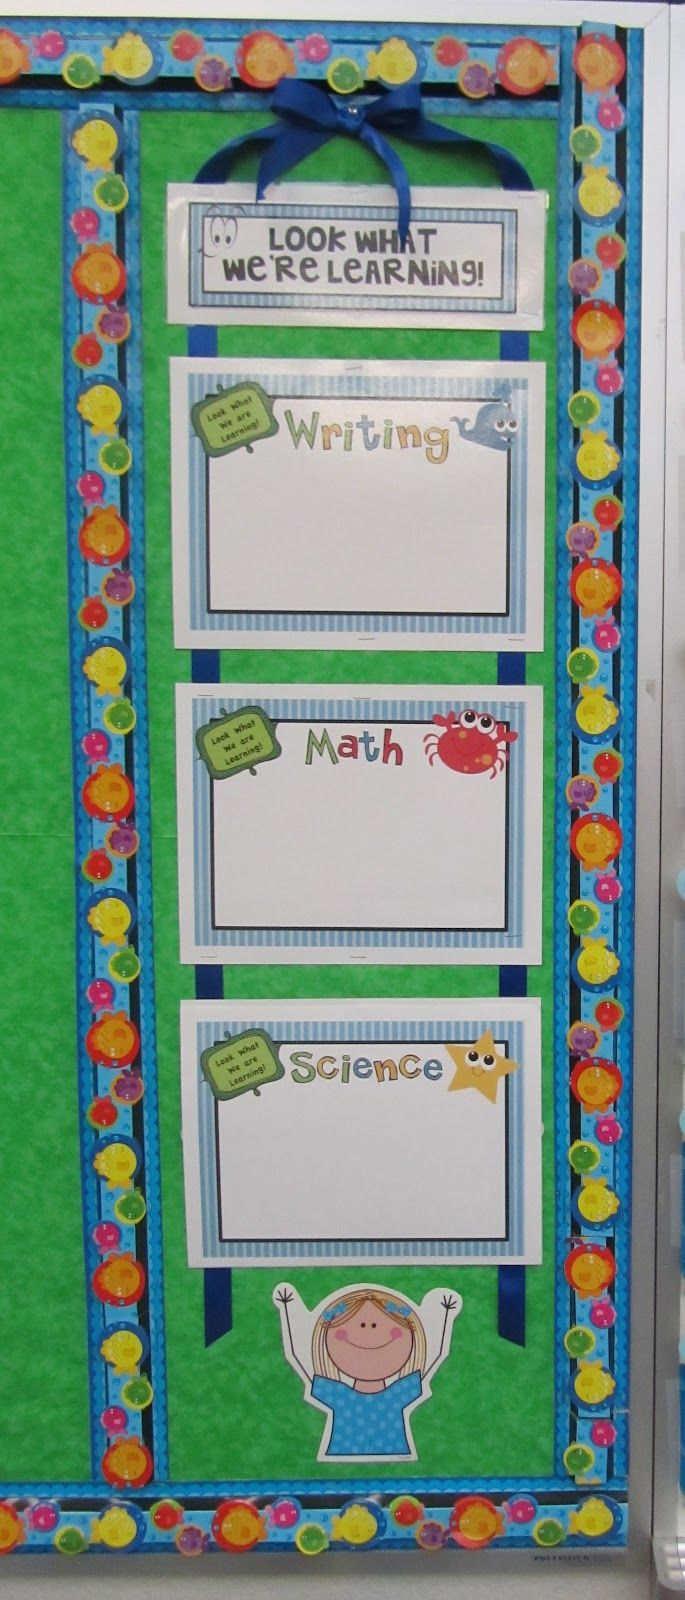 display learning targets.